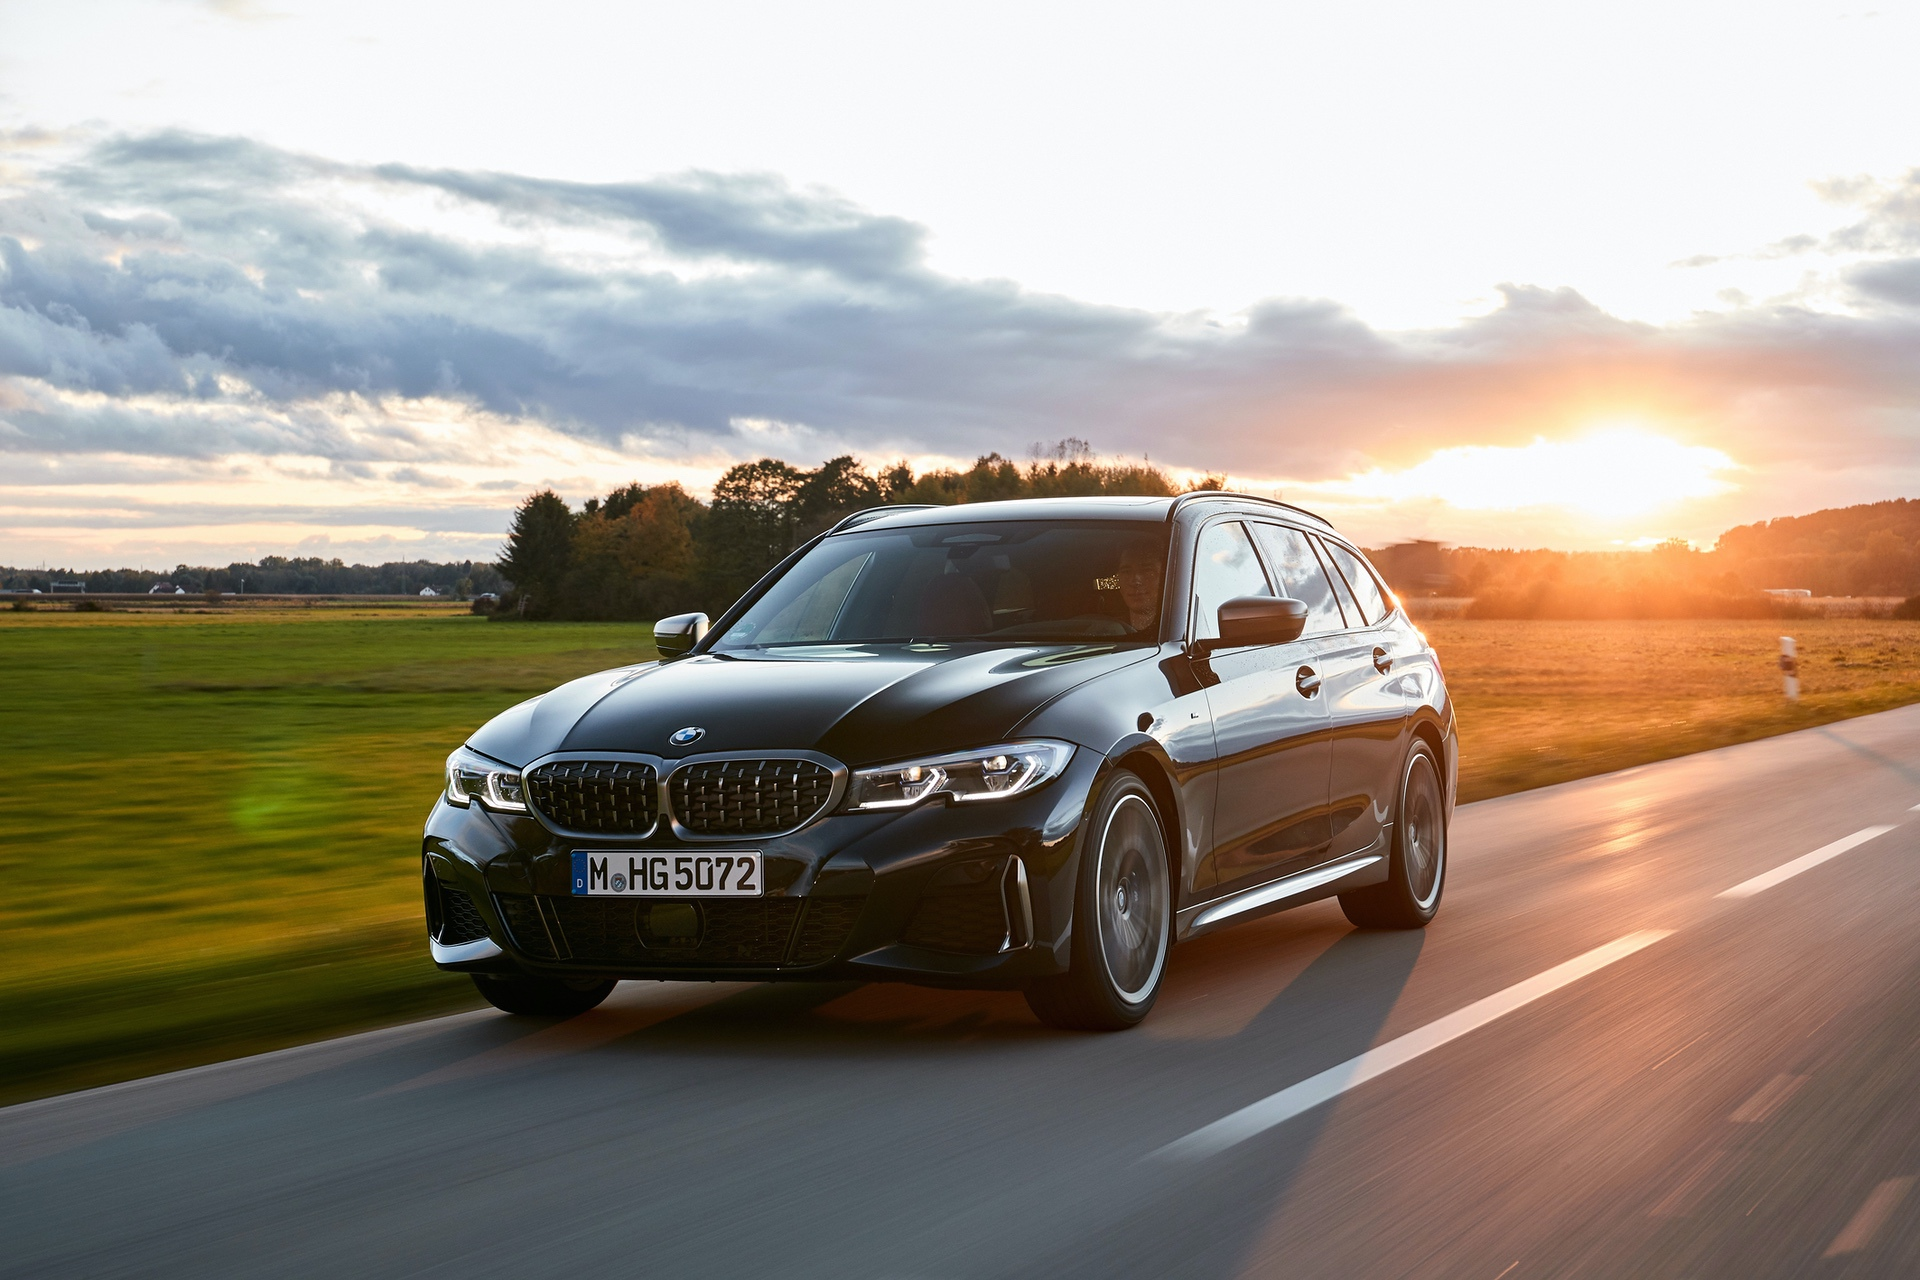 U.S. BMW Dealer says a Performance Wagon is Needed to Compete with Audi, Mercedes-AMG